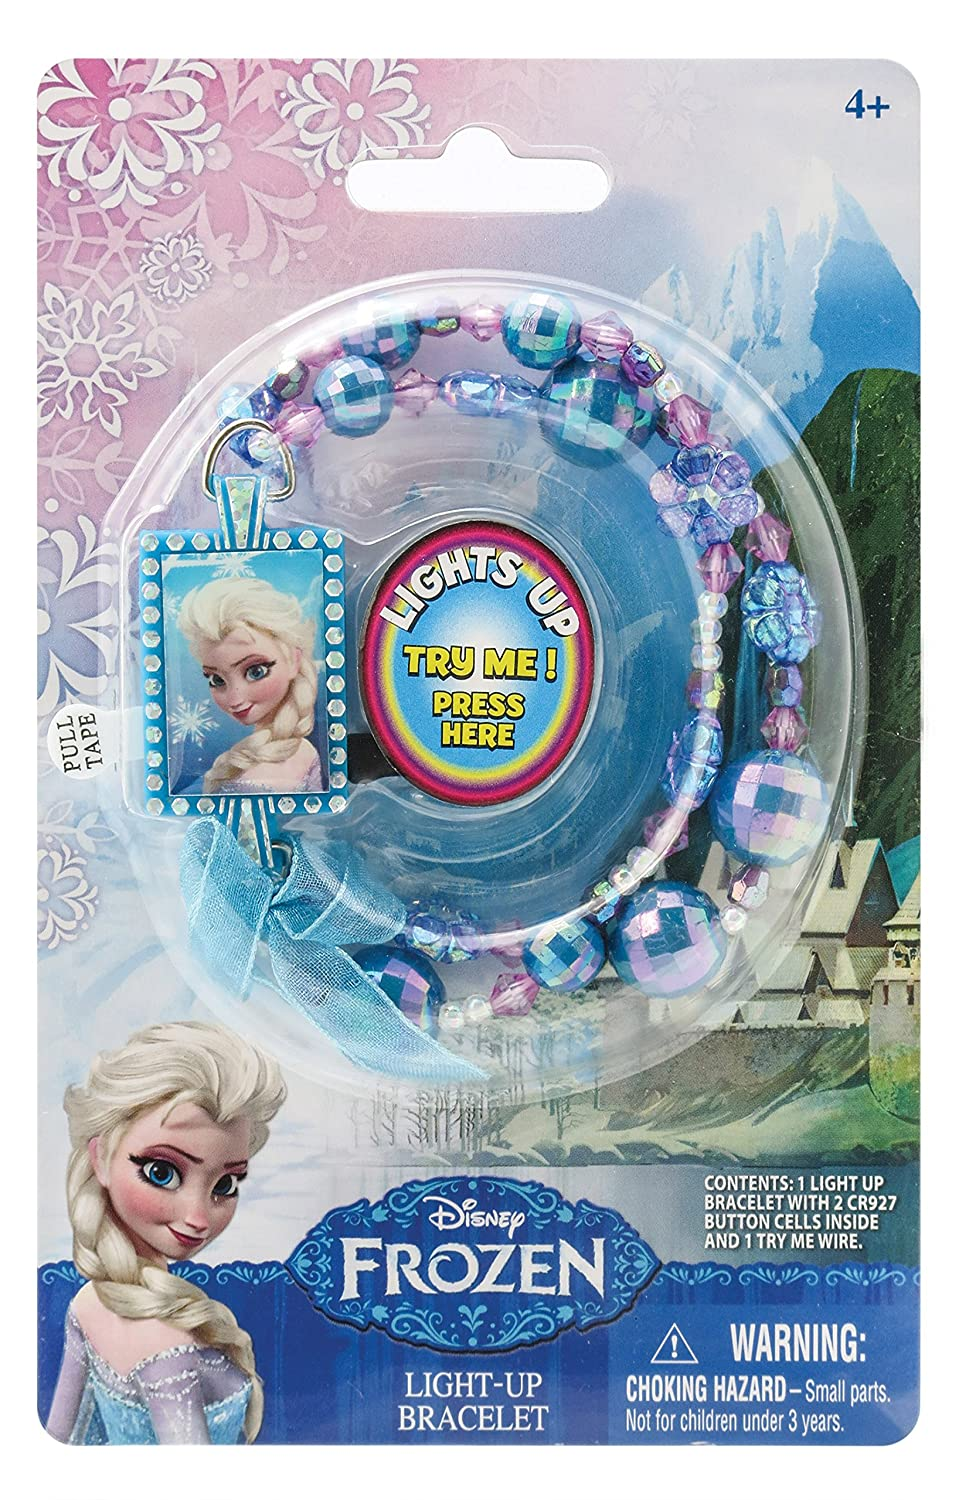 Disney's Frozen Light-Up Bead Bracelet: 'Elsa' Monogram International Inc. 22261